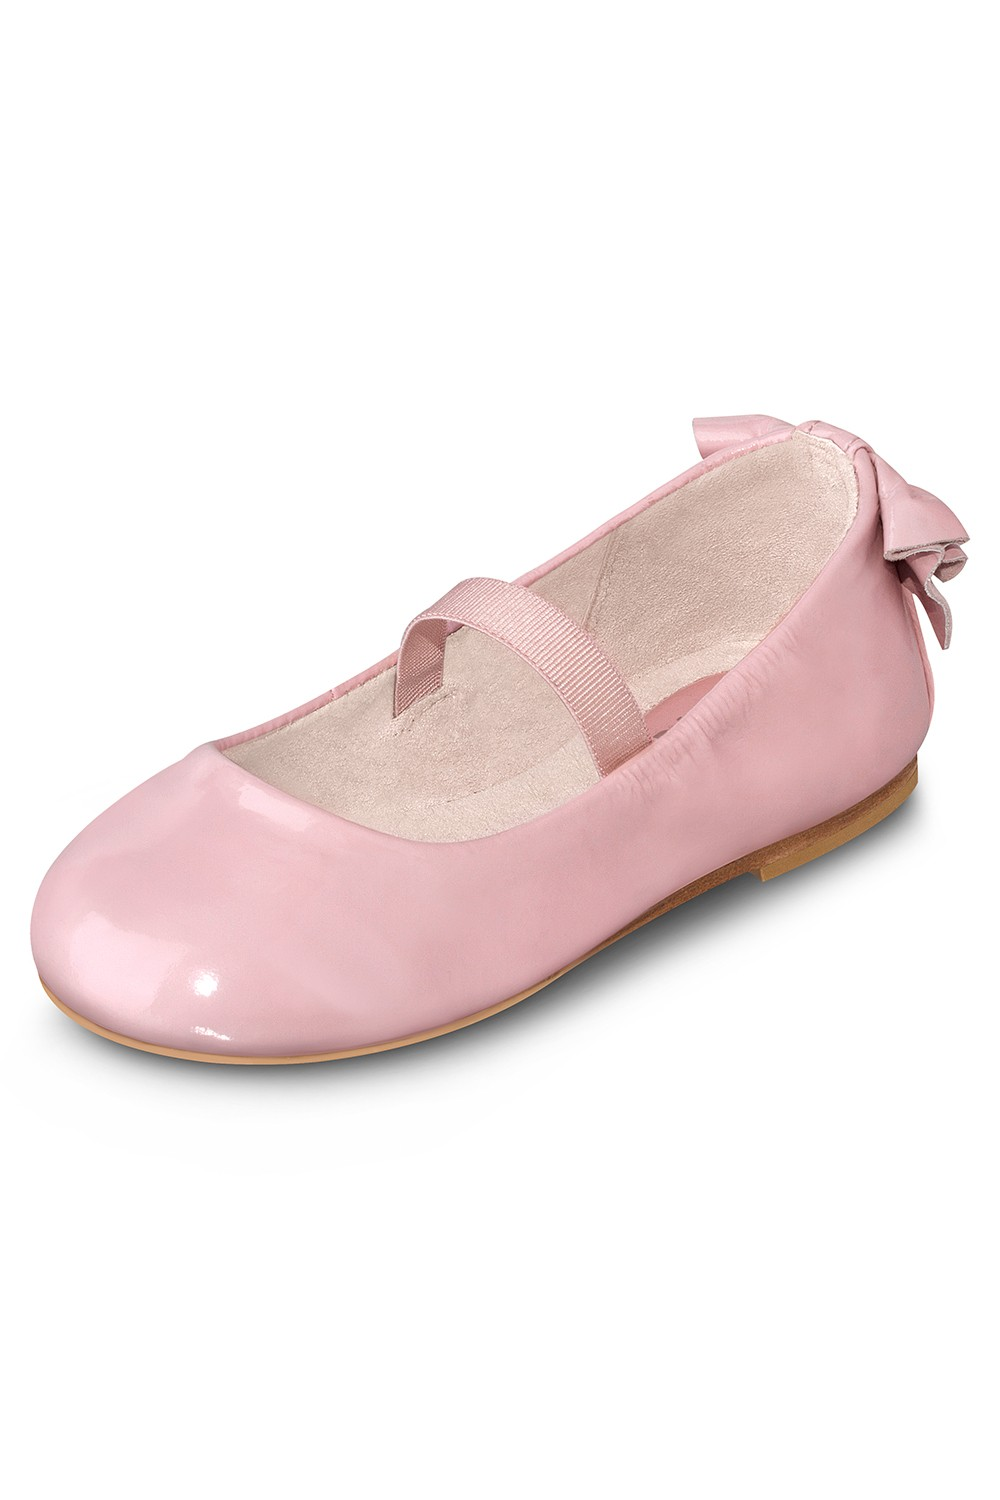 Chloe - Toddler Toddlers Fashion Shoes